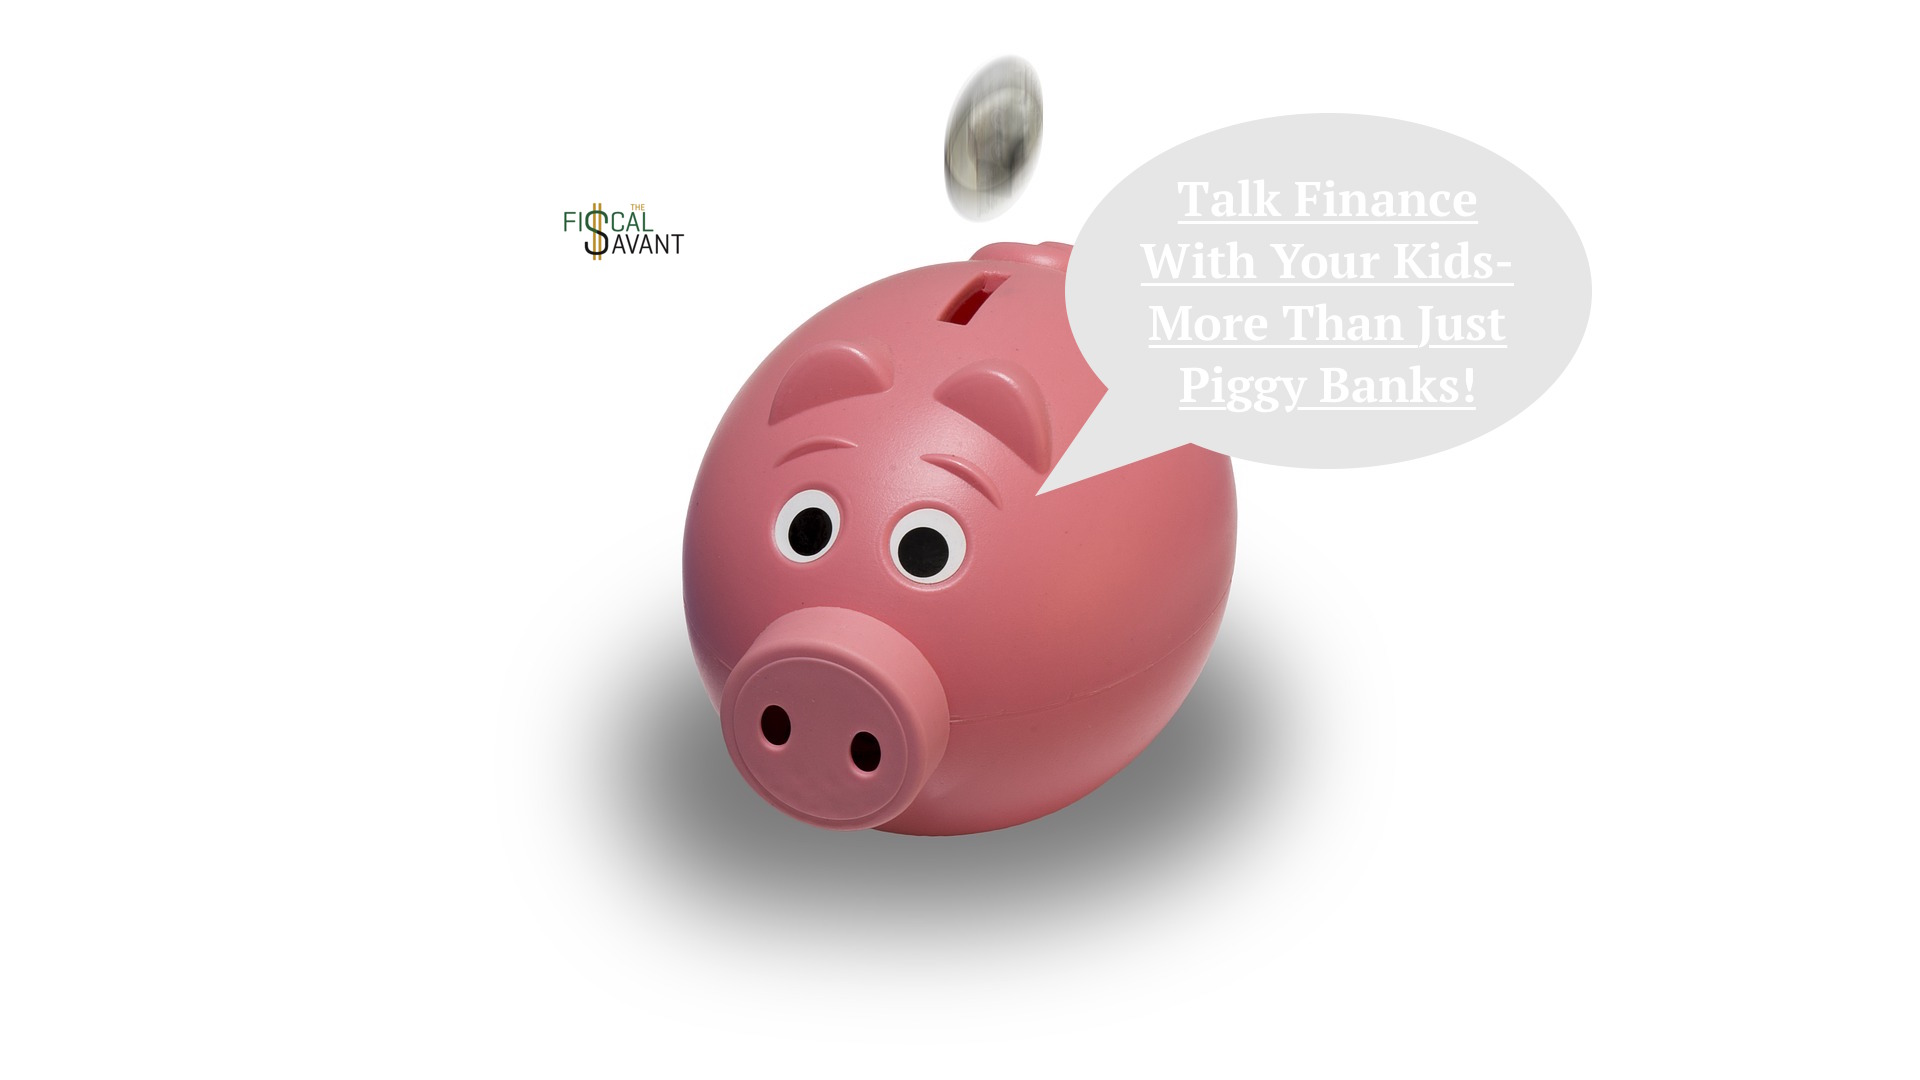 Joyous Your Than Just Piggy Banks Fiscal Savant Talk Finance Kids Dog Piggy Banks Your Than Just Piggy Banks Fiscal Piggy Banks Talk Finance Kids South Africa baby Piggy Banks For Kids